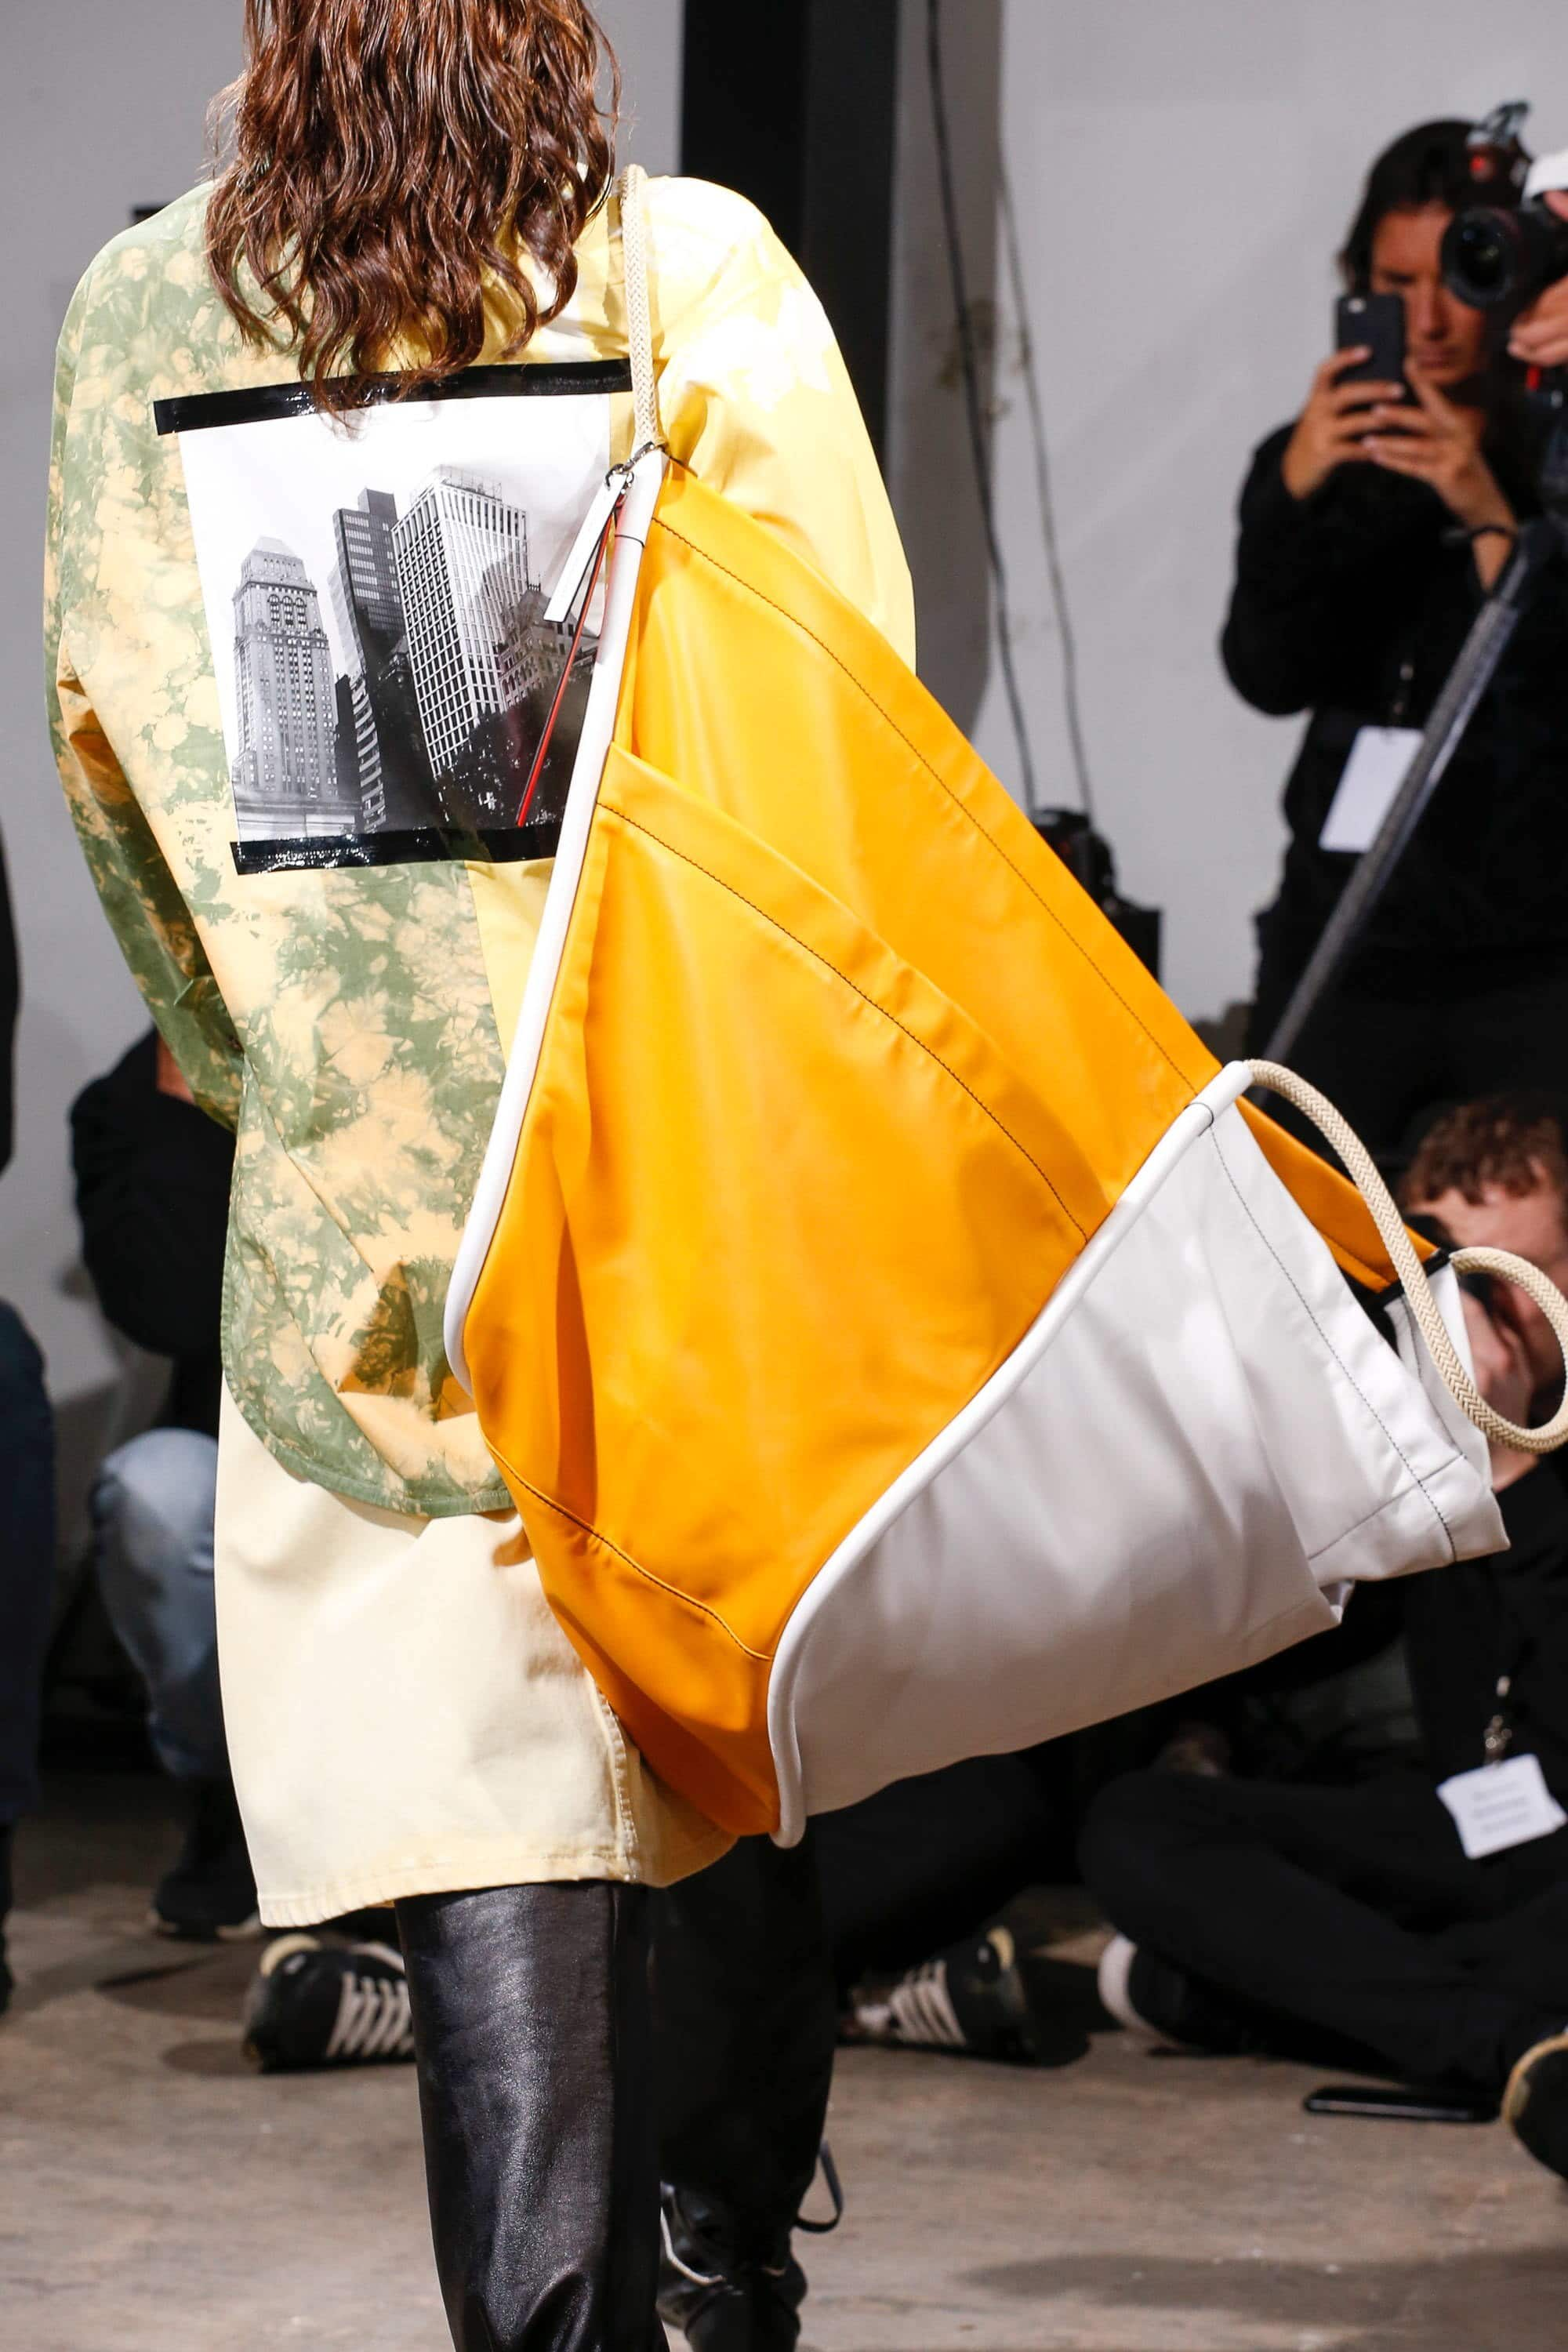 https://www.spottedfashion.com/wp-content/uploads/2018/09/Proenza-Schouler-WhiteYellow-Oversized-Tote-Bag-1-Spring-2019.jpg